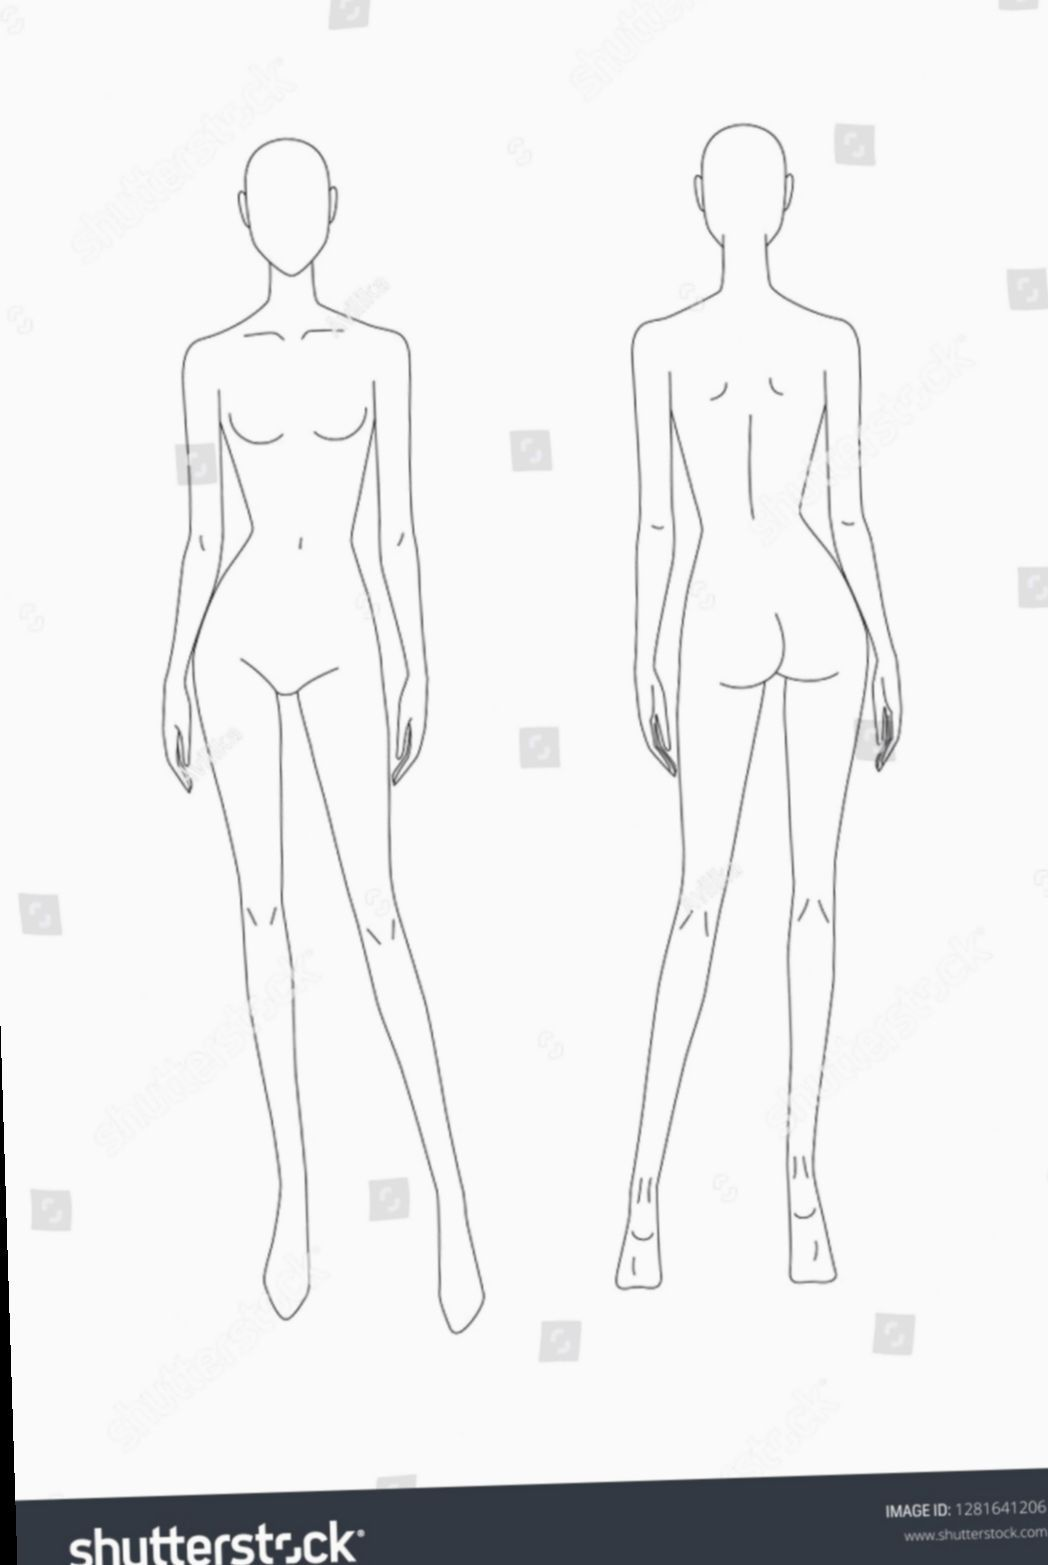 003 Shocking Body Template For Fashion Design Highest Quality  Female Male HumanFull